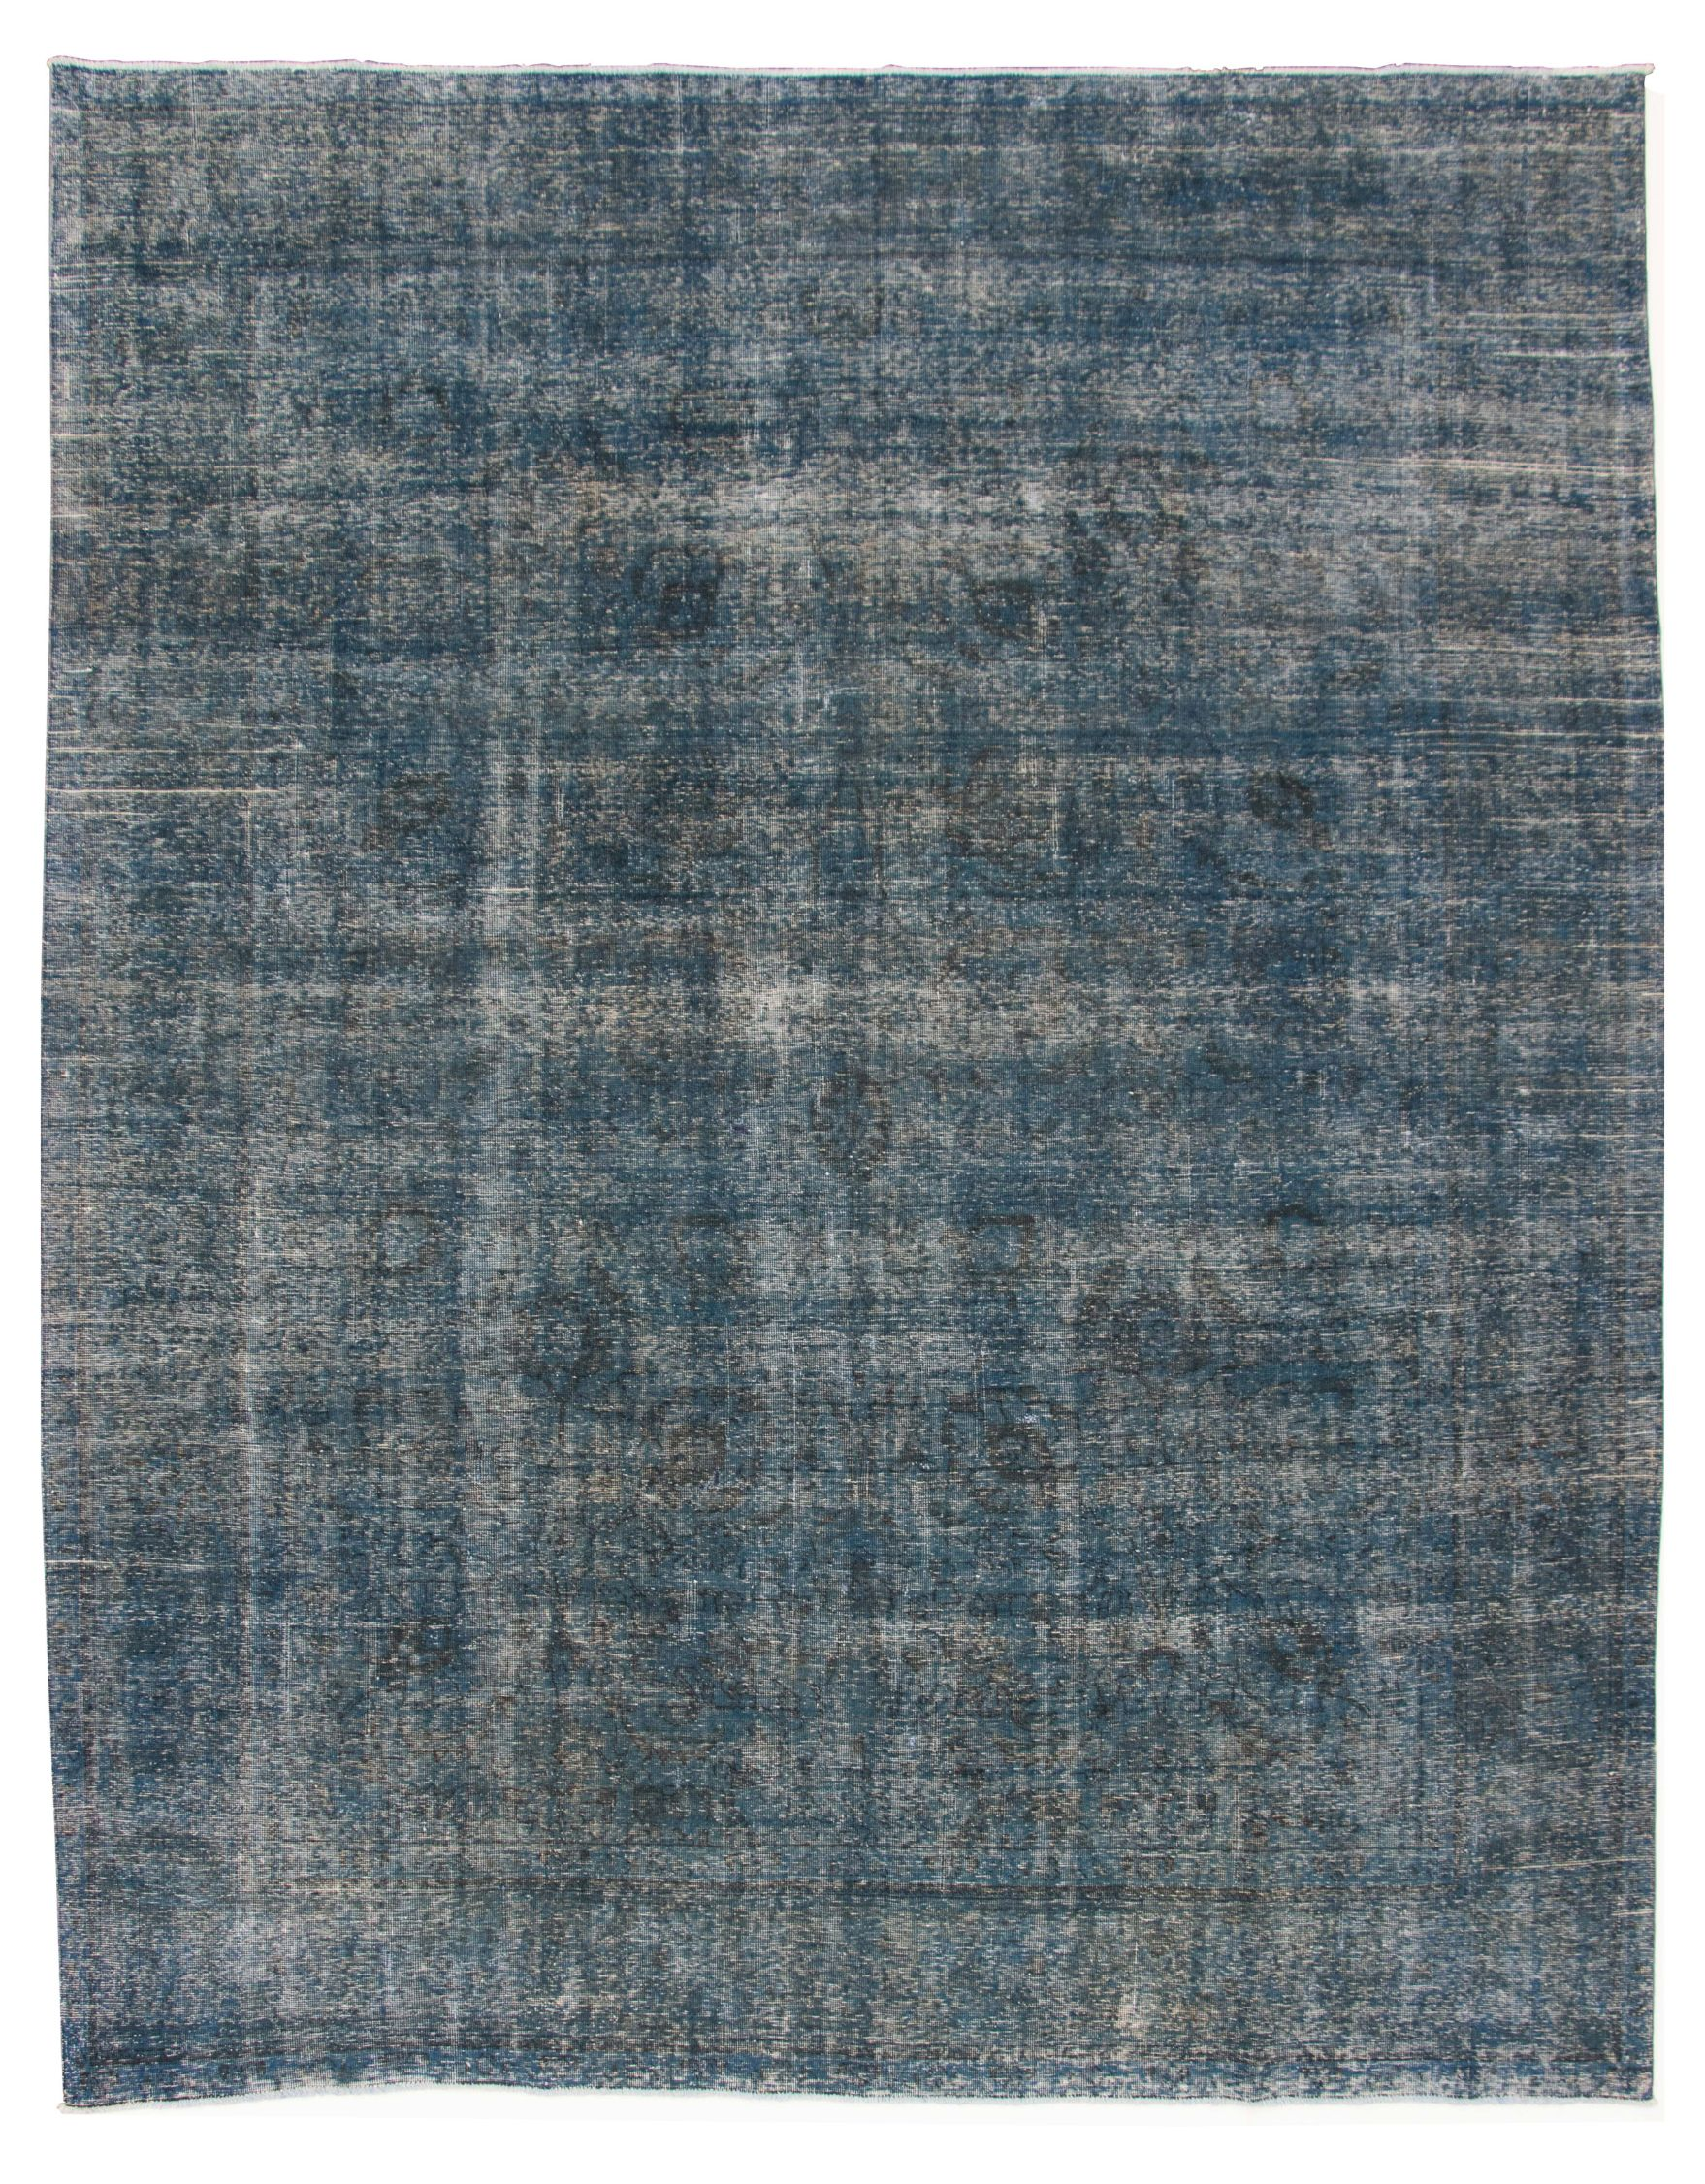 """Hand-knotted Color Transition Navy Blue Wool Rug 9'9"""" x 12'7"""" Size: 9'9"""" x 12'7"""""""